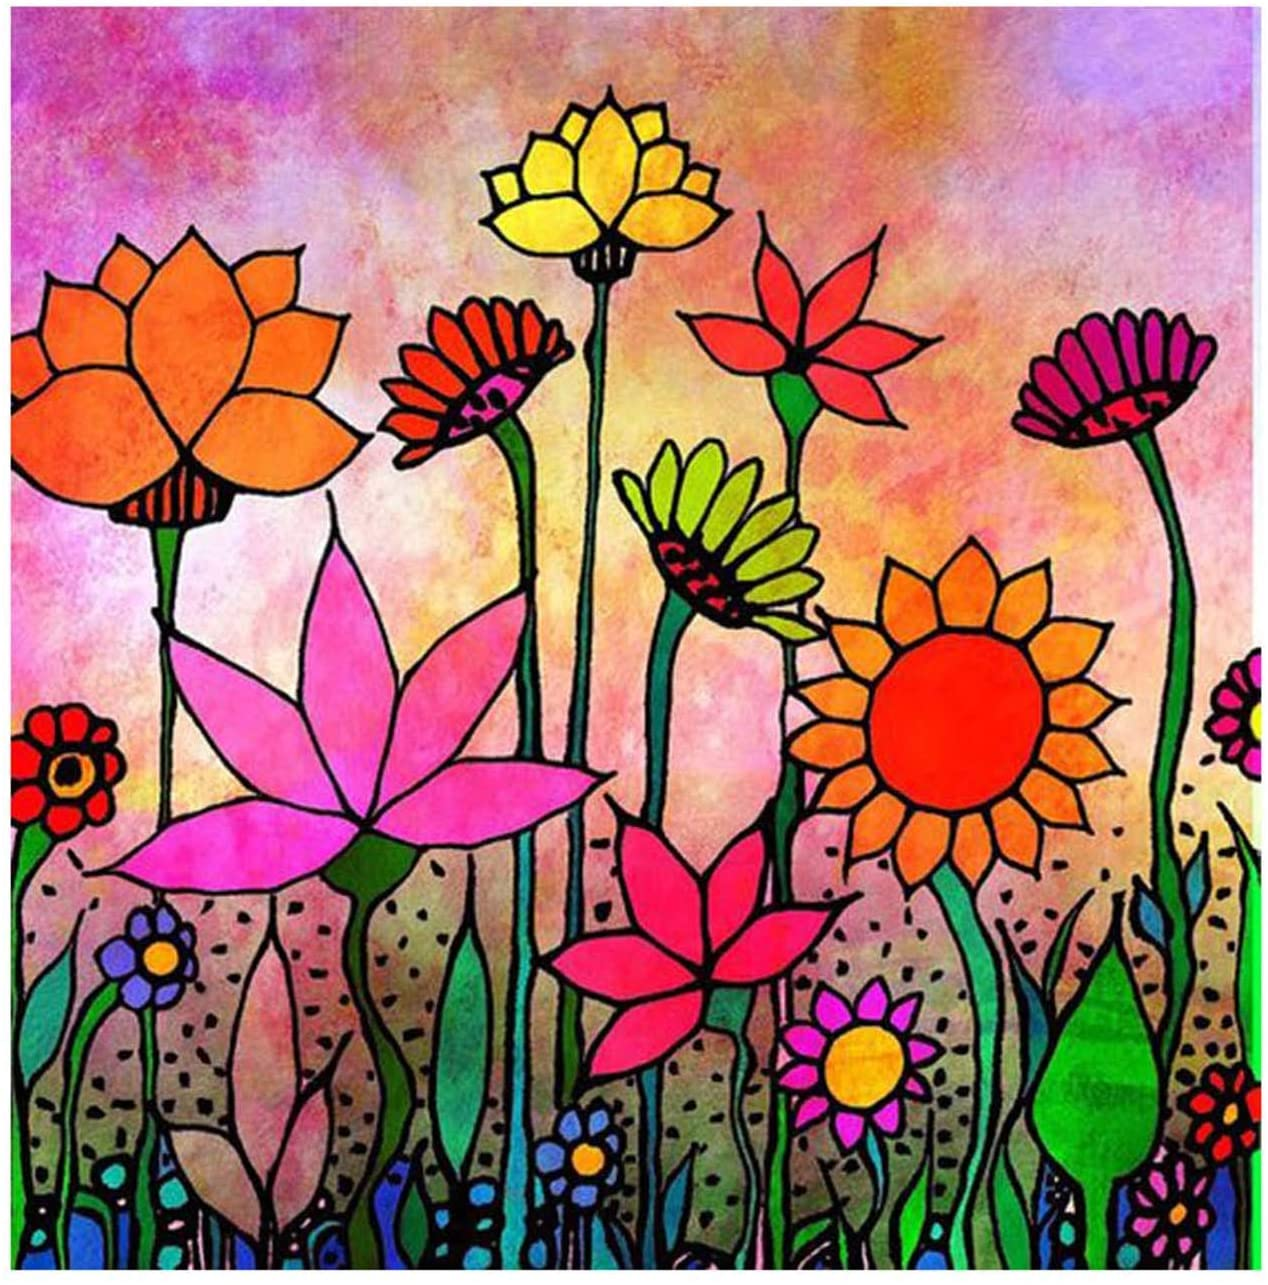 5D Diamond Painting Sunflowers and Flowers Full Drill by Number Kits, SKRYUIE DIY Rhinestone Pasted Paint with Diamond Set Arts Craft Decorations (20x20inch)